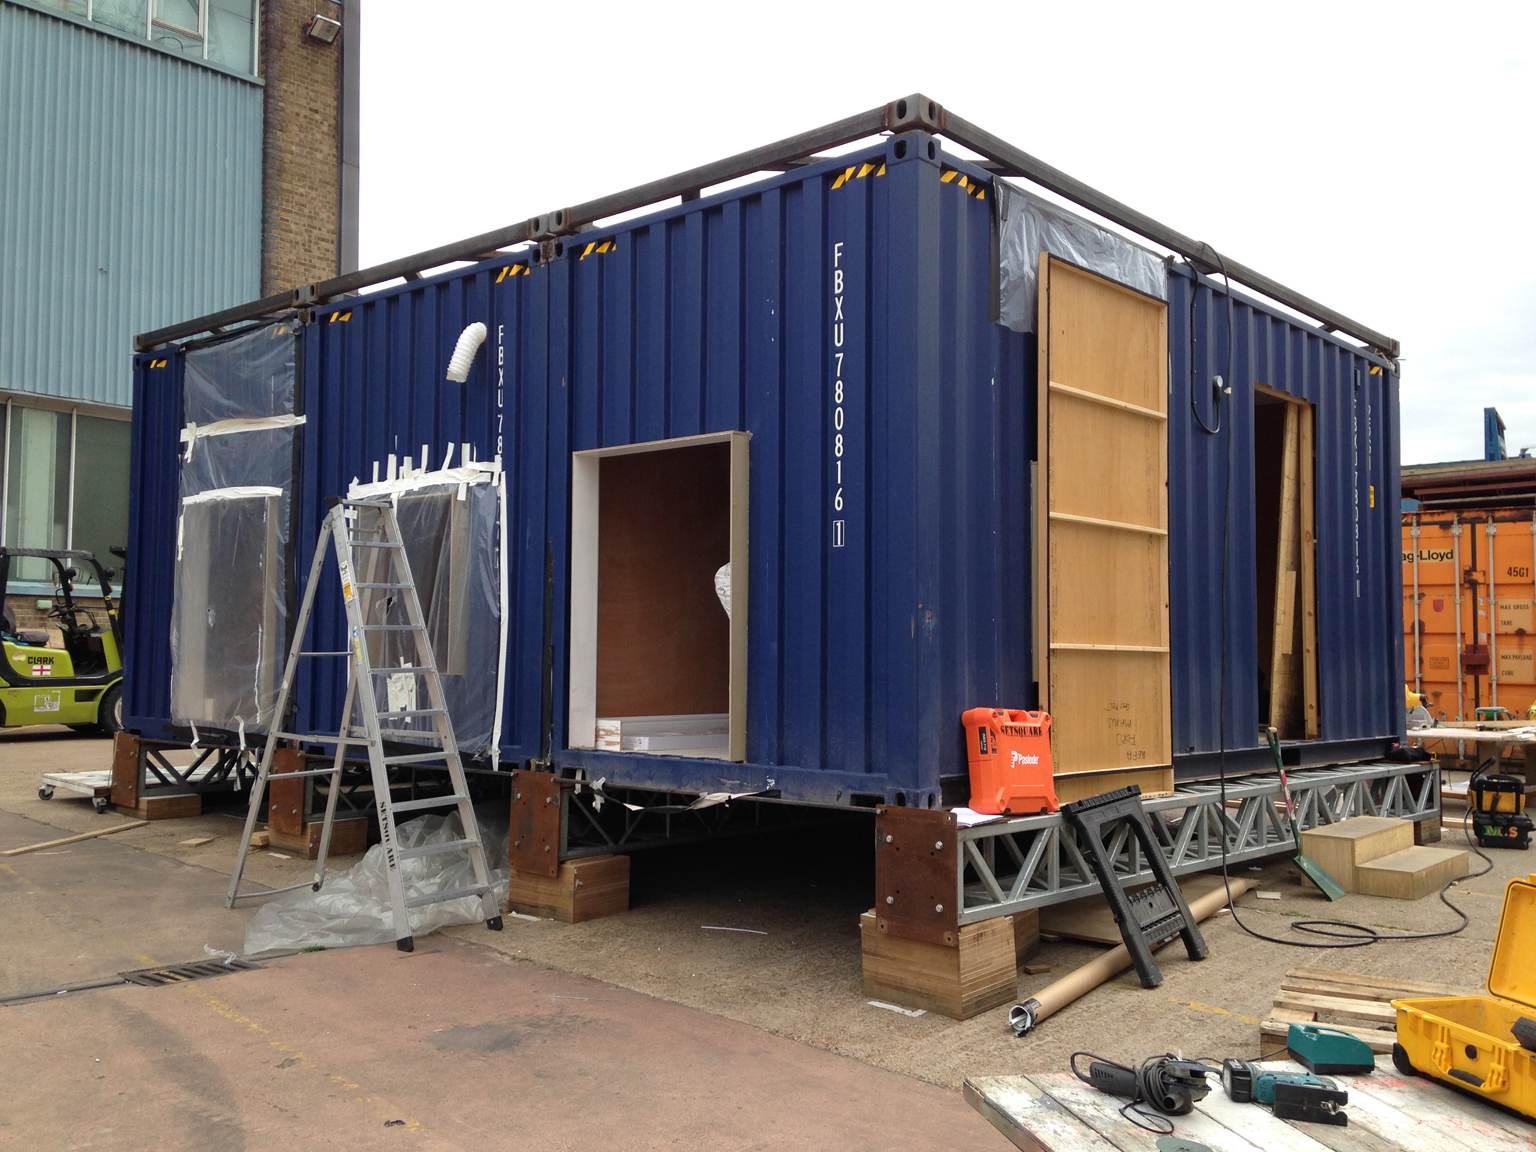 Shipping containers used to build the structure